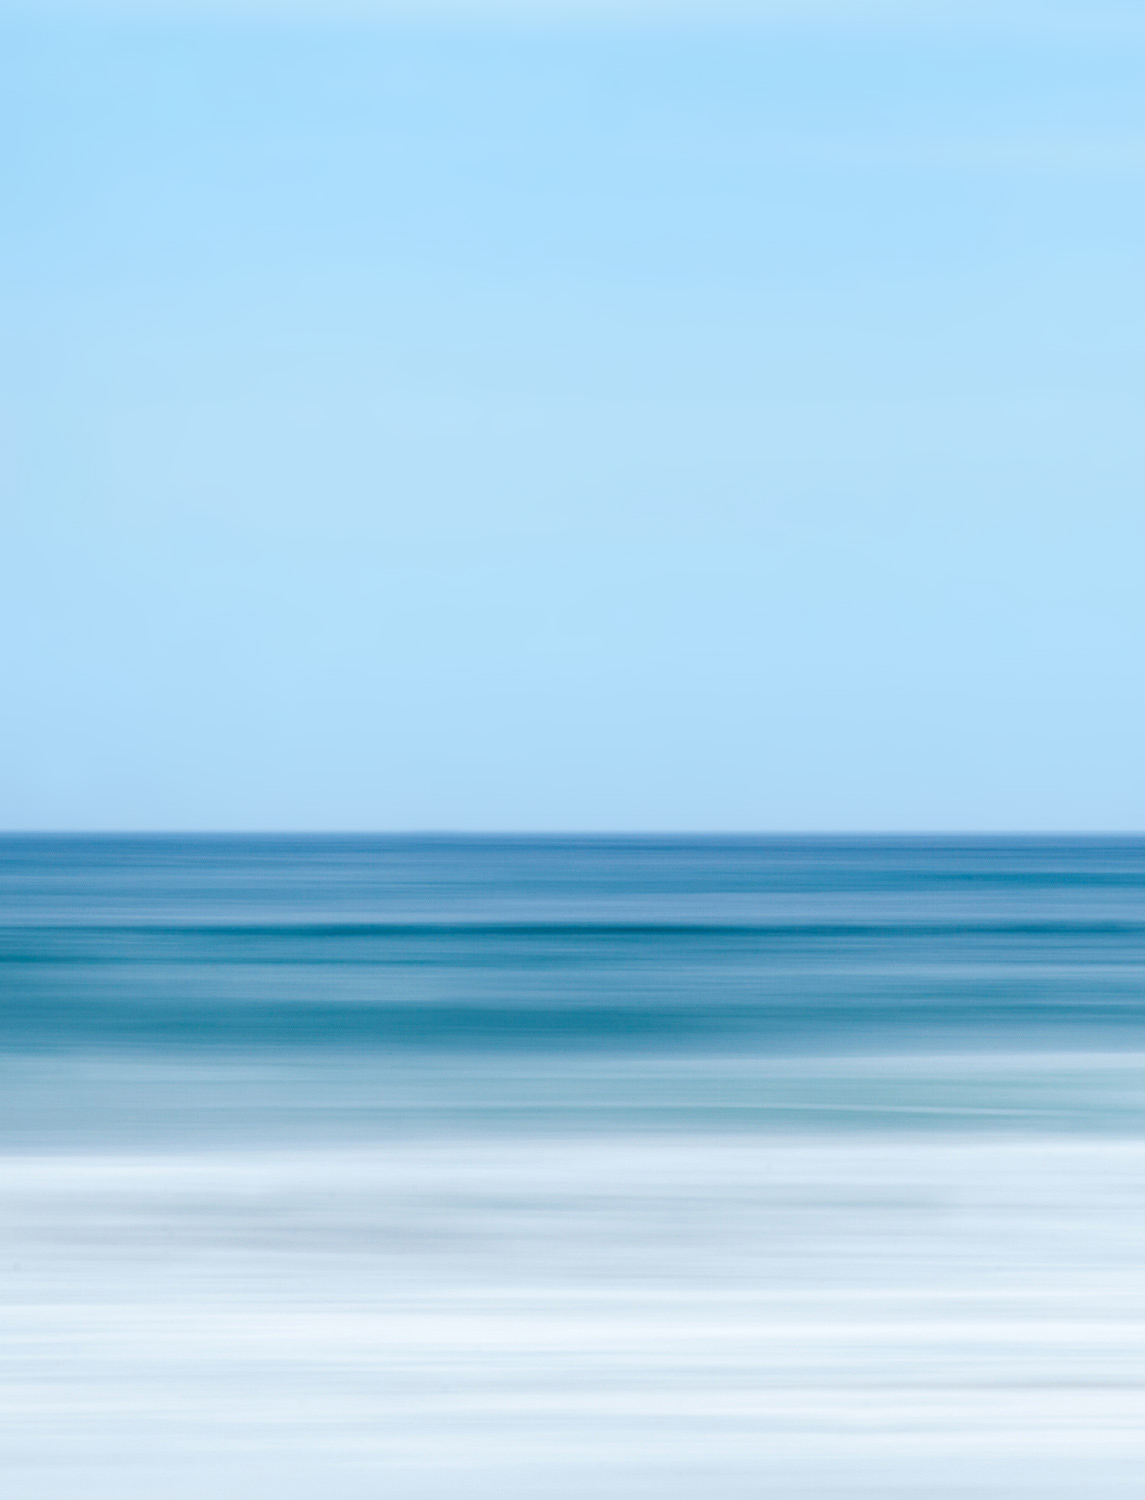 How Mark Rothko's Paintings Can Inspire Your Photography